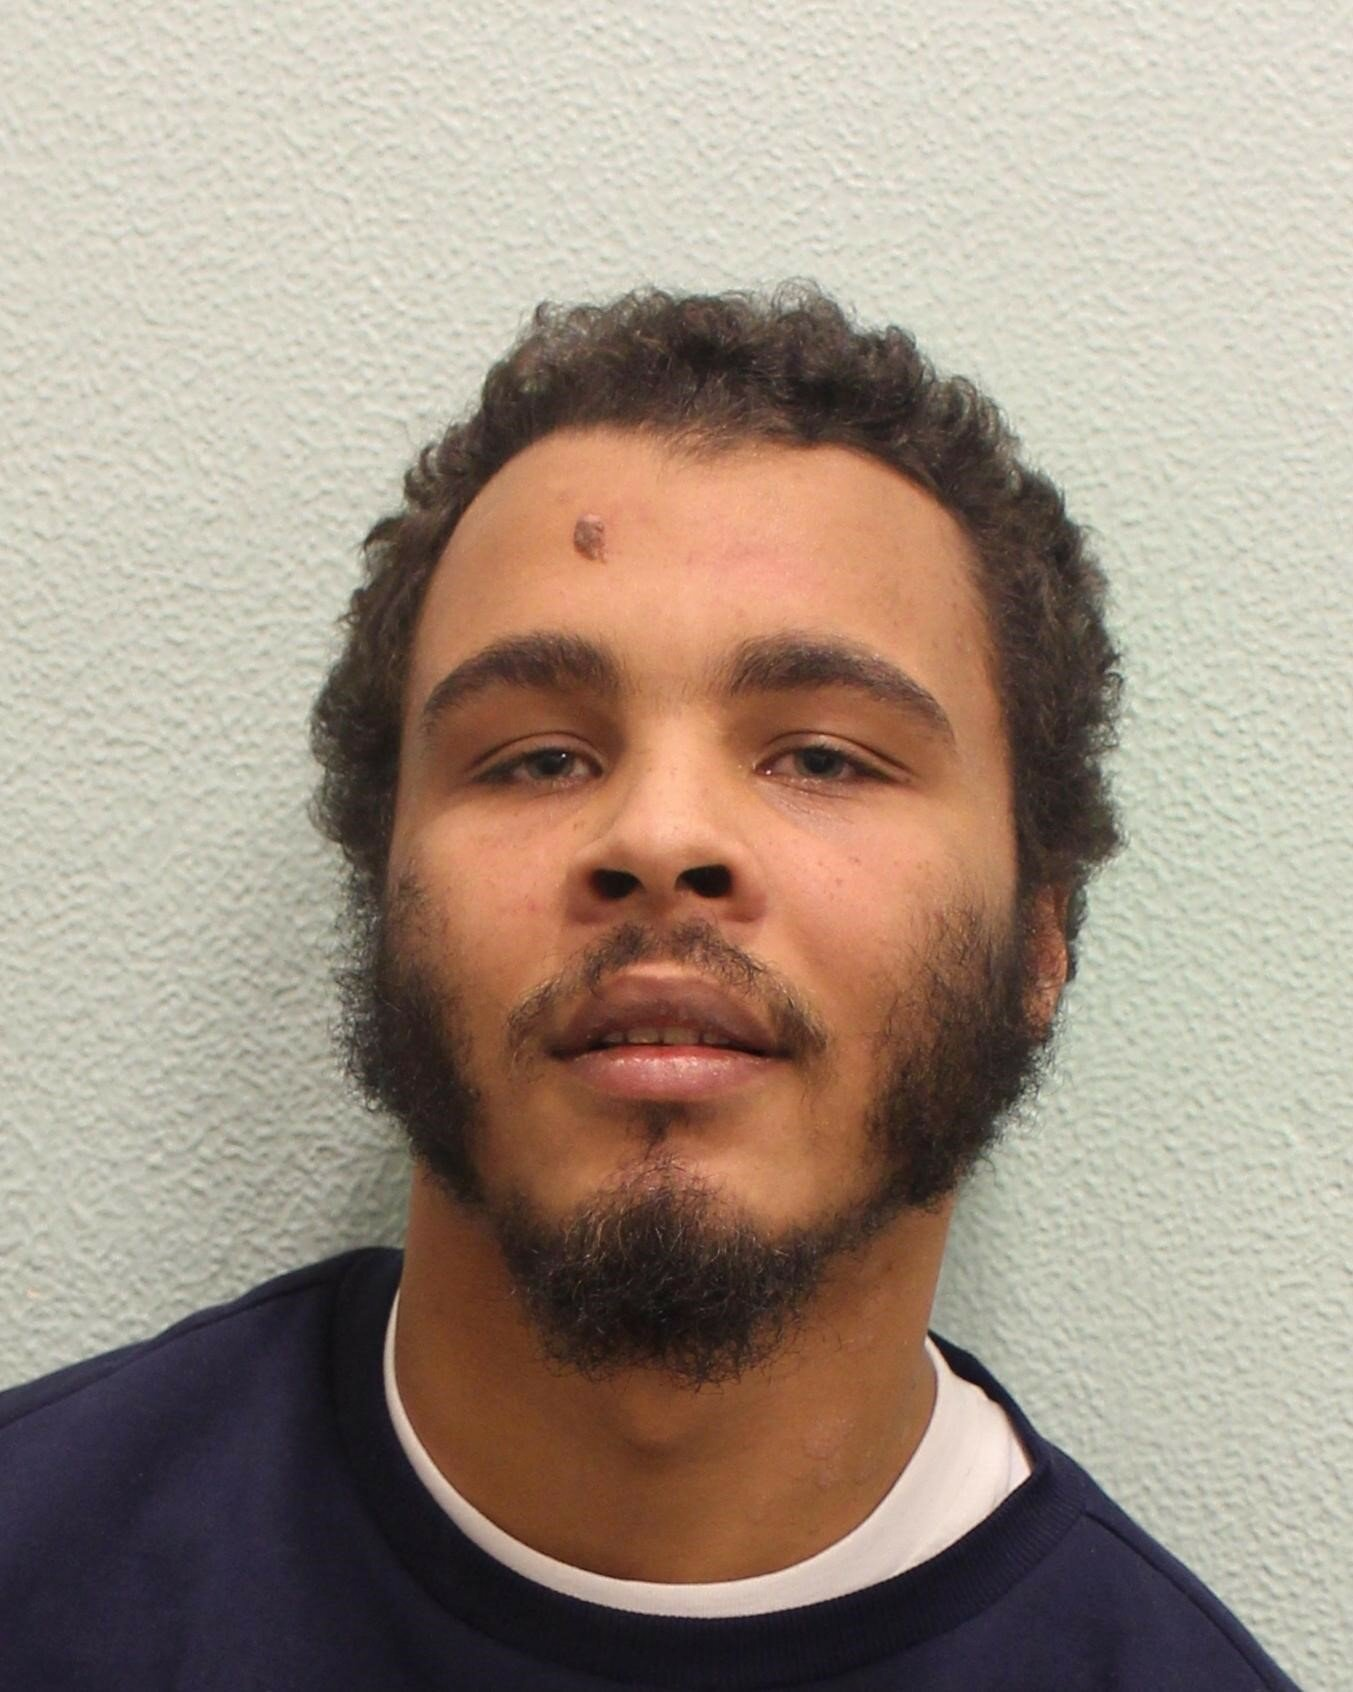 Pic shows Jordan Bailey-Mascoll A moped-riding mugger fought with security guards today (Fri) as he was convicted of stabbing a man to death for his ?7,000 Rolex in front of the victim?s girlfriend. Jordan Bailey-Mascoll, 25, was one of two men who attacked murdered Danny Pearce, 31, as he left Oliver's jazz club in Greenwich, south London. Bailey-Mascoll and an accomplice he refused to name, known as 'Ghost' drove around on a moped, targeting people with expensive watches, Woolwich Crown Court heard. SEE STORY CENTRAL NEWS